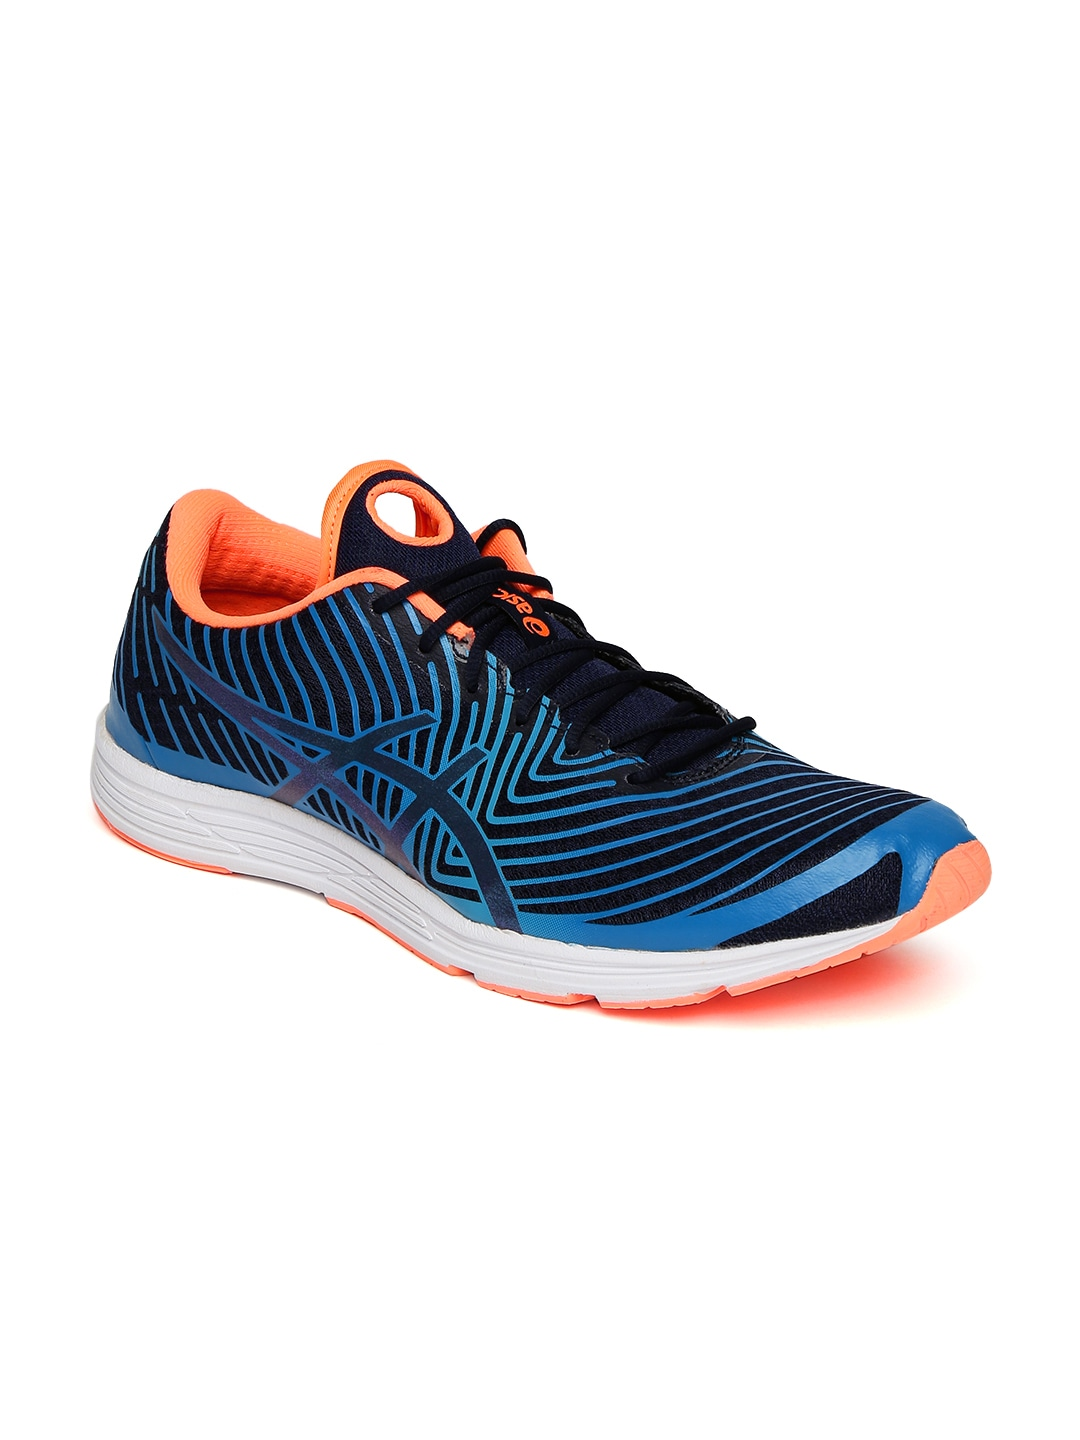 Blue GEL-HYPER TRI 3 Running Shoes